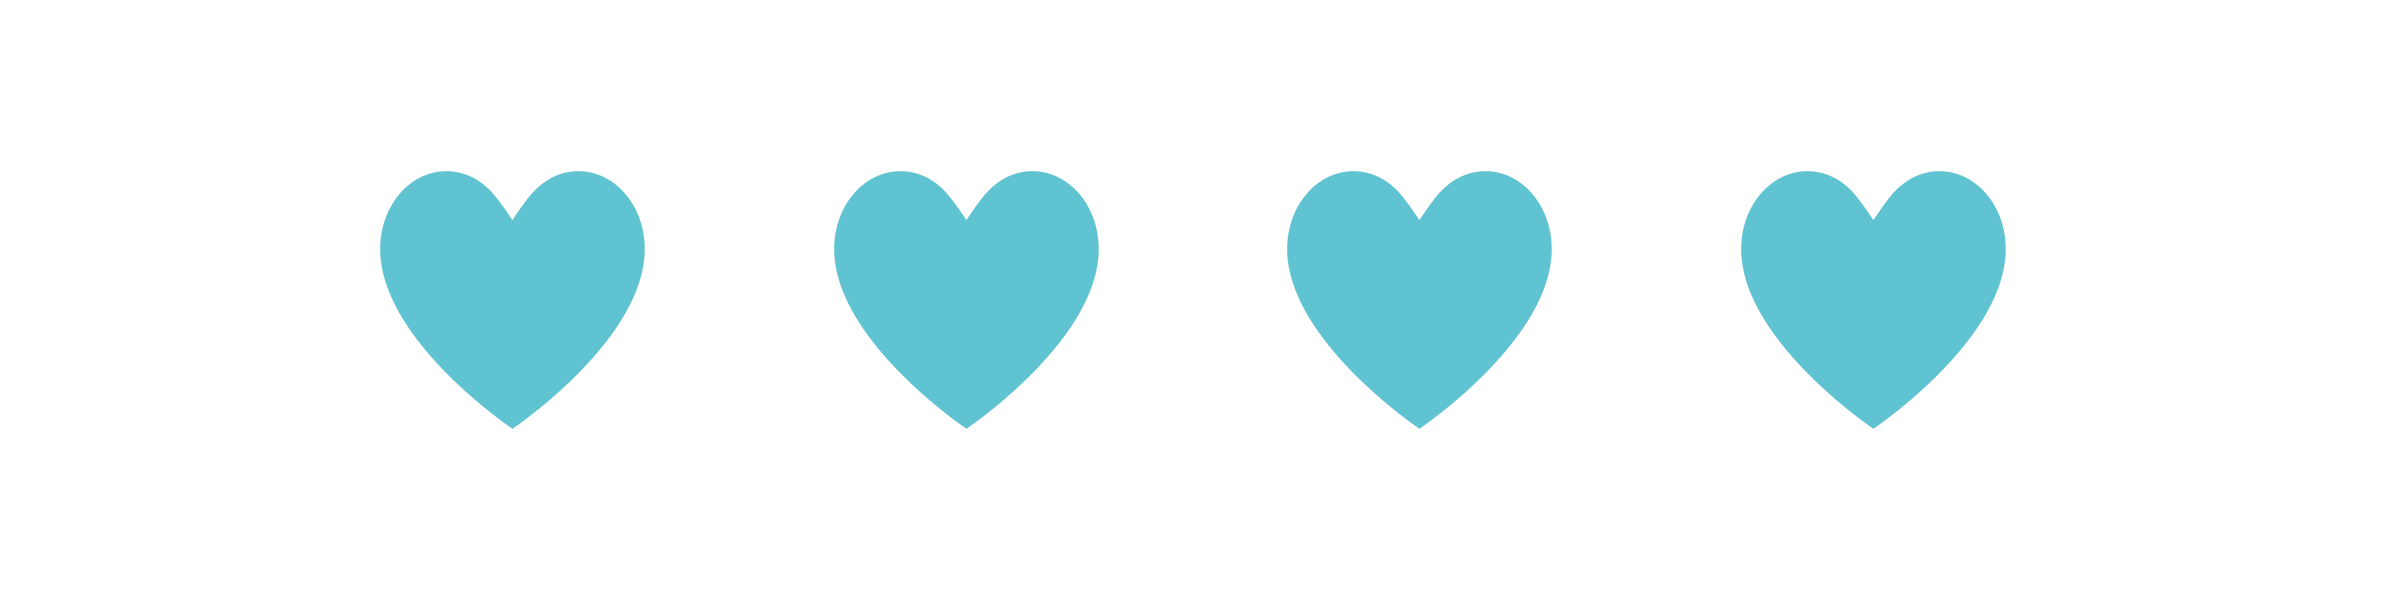 chi heart.png